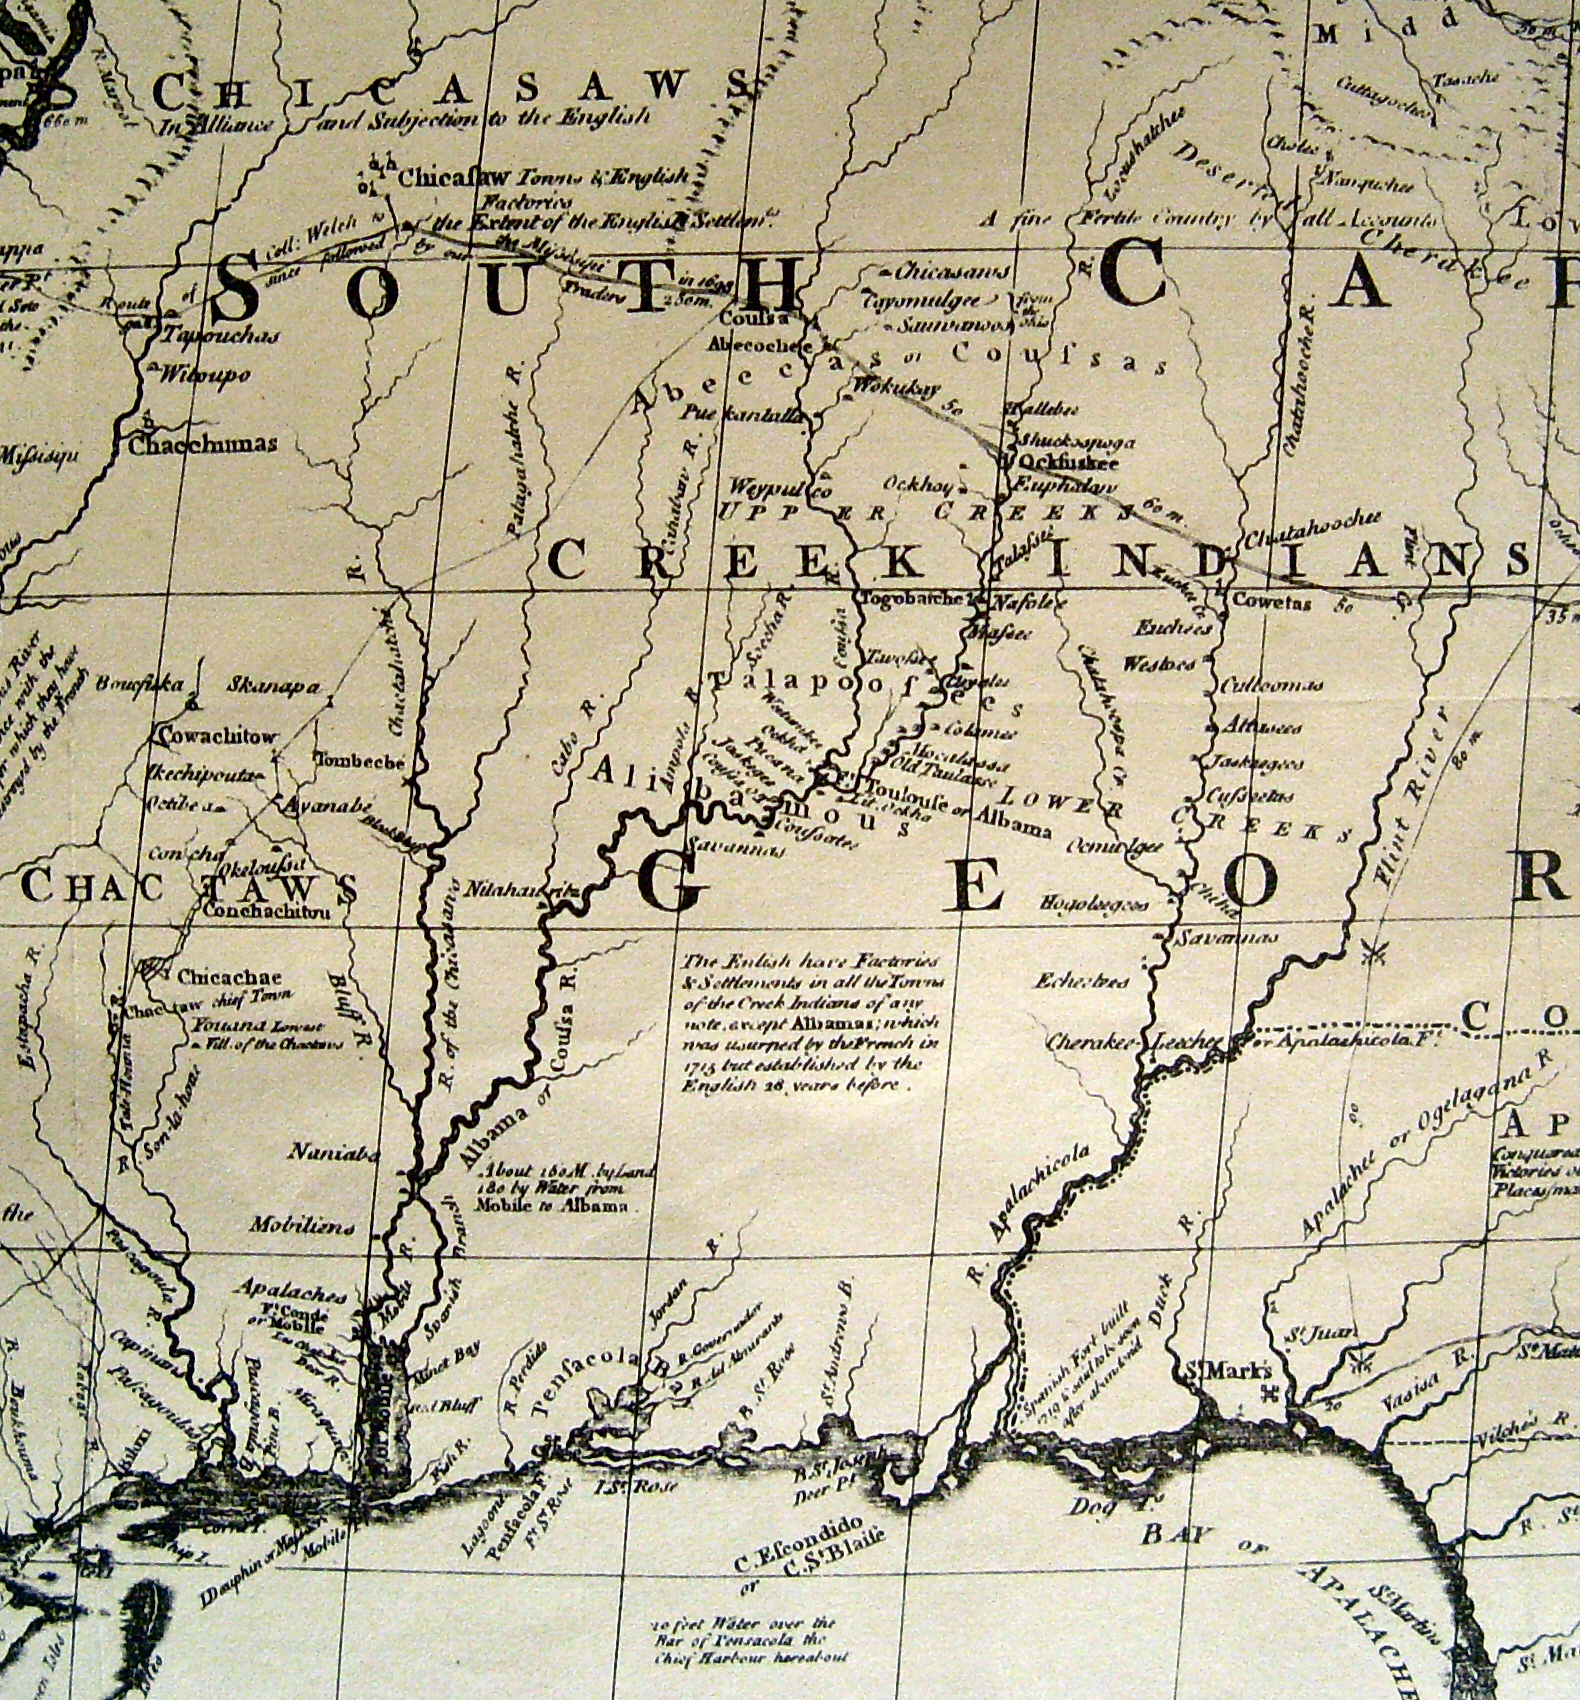 Alabama Maps. Alabama Digital Map Liry. Table of Contents ... on map missouri indians, map of alabama national forests, map nebraska indians, early alabama indians, map of alabama railroads, map of alabama in water, map of alabama forts, map kansas indians, map maryland indians, alabama history indians, map indiana indians,